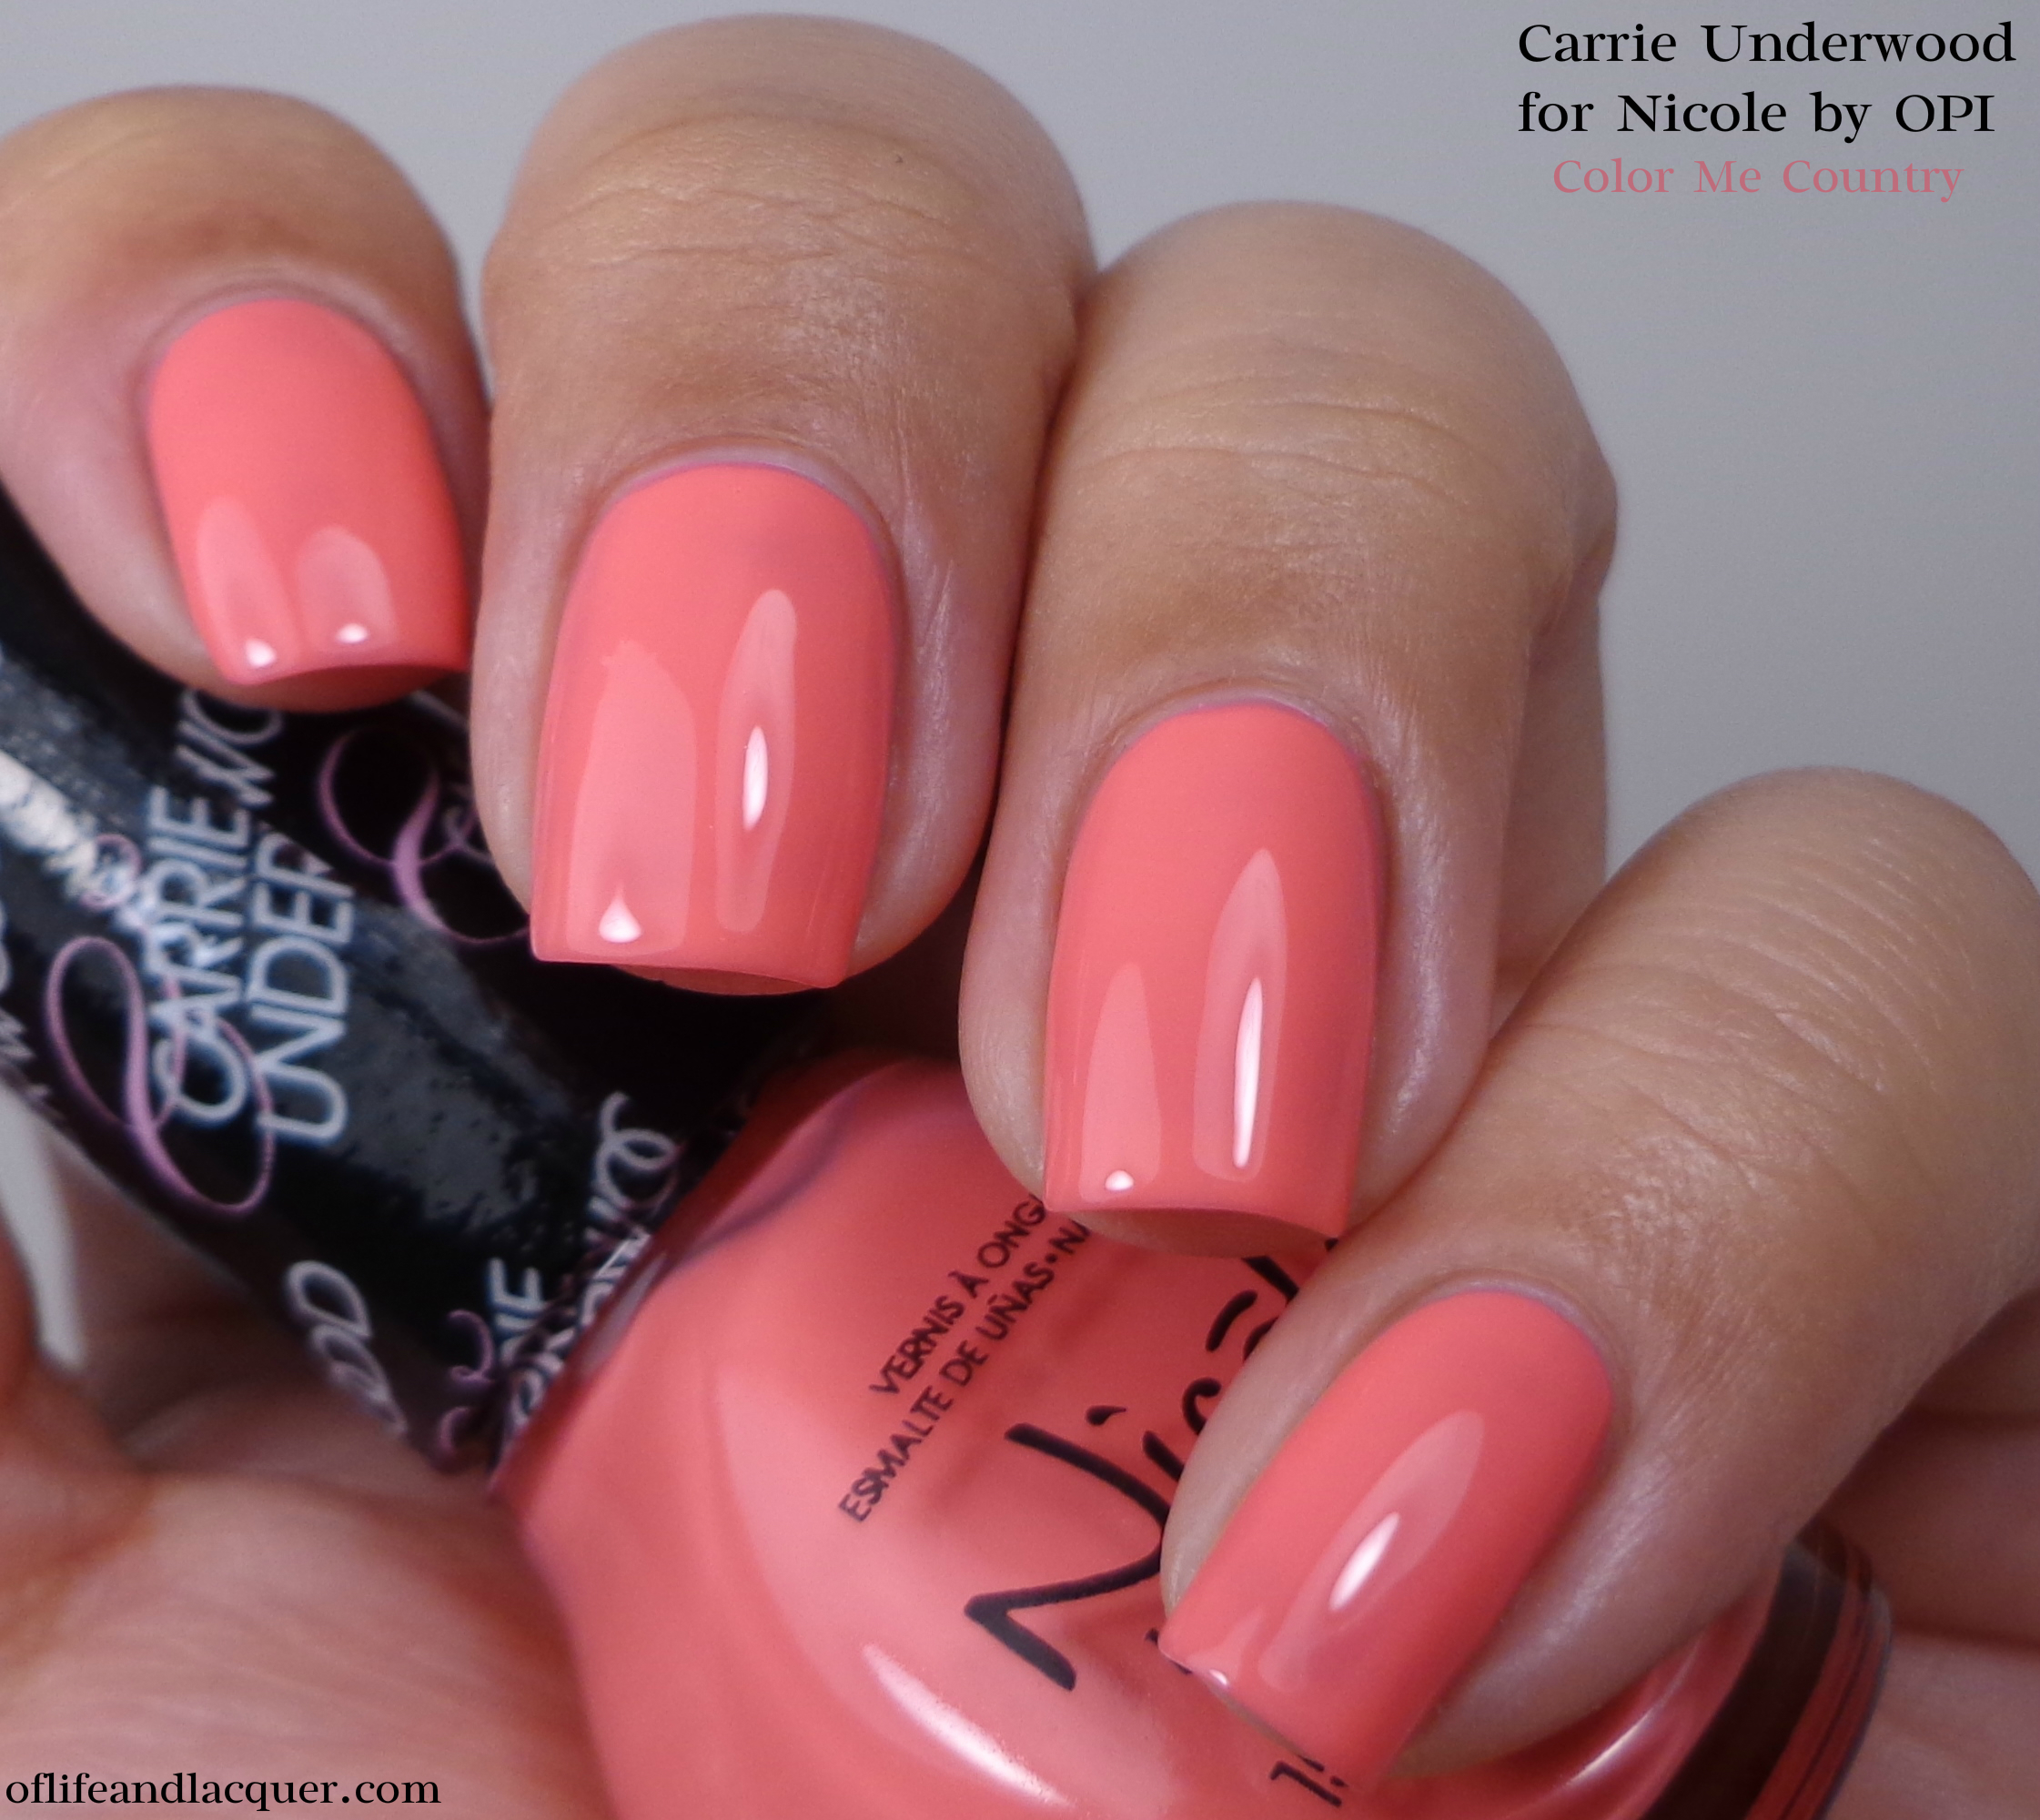 Nicole by OPI Color Me Country 1a - Of Life and Lacquer